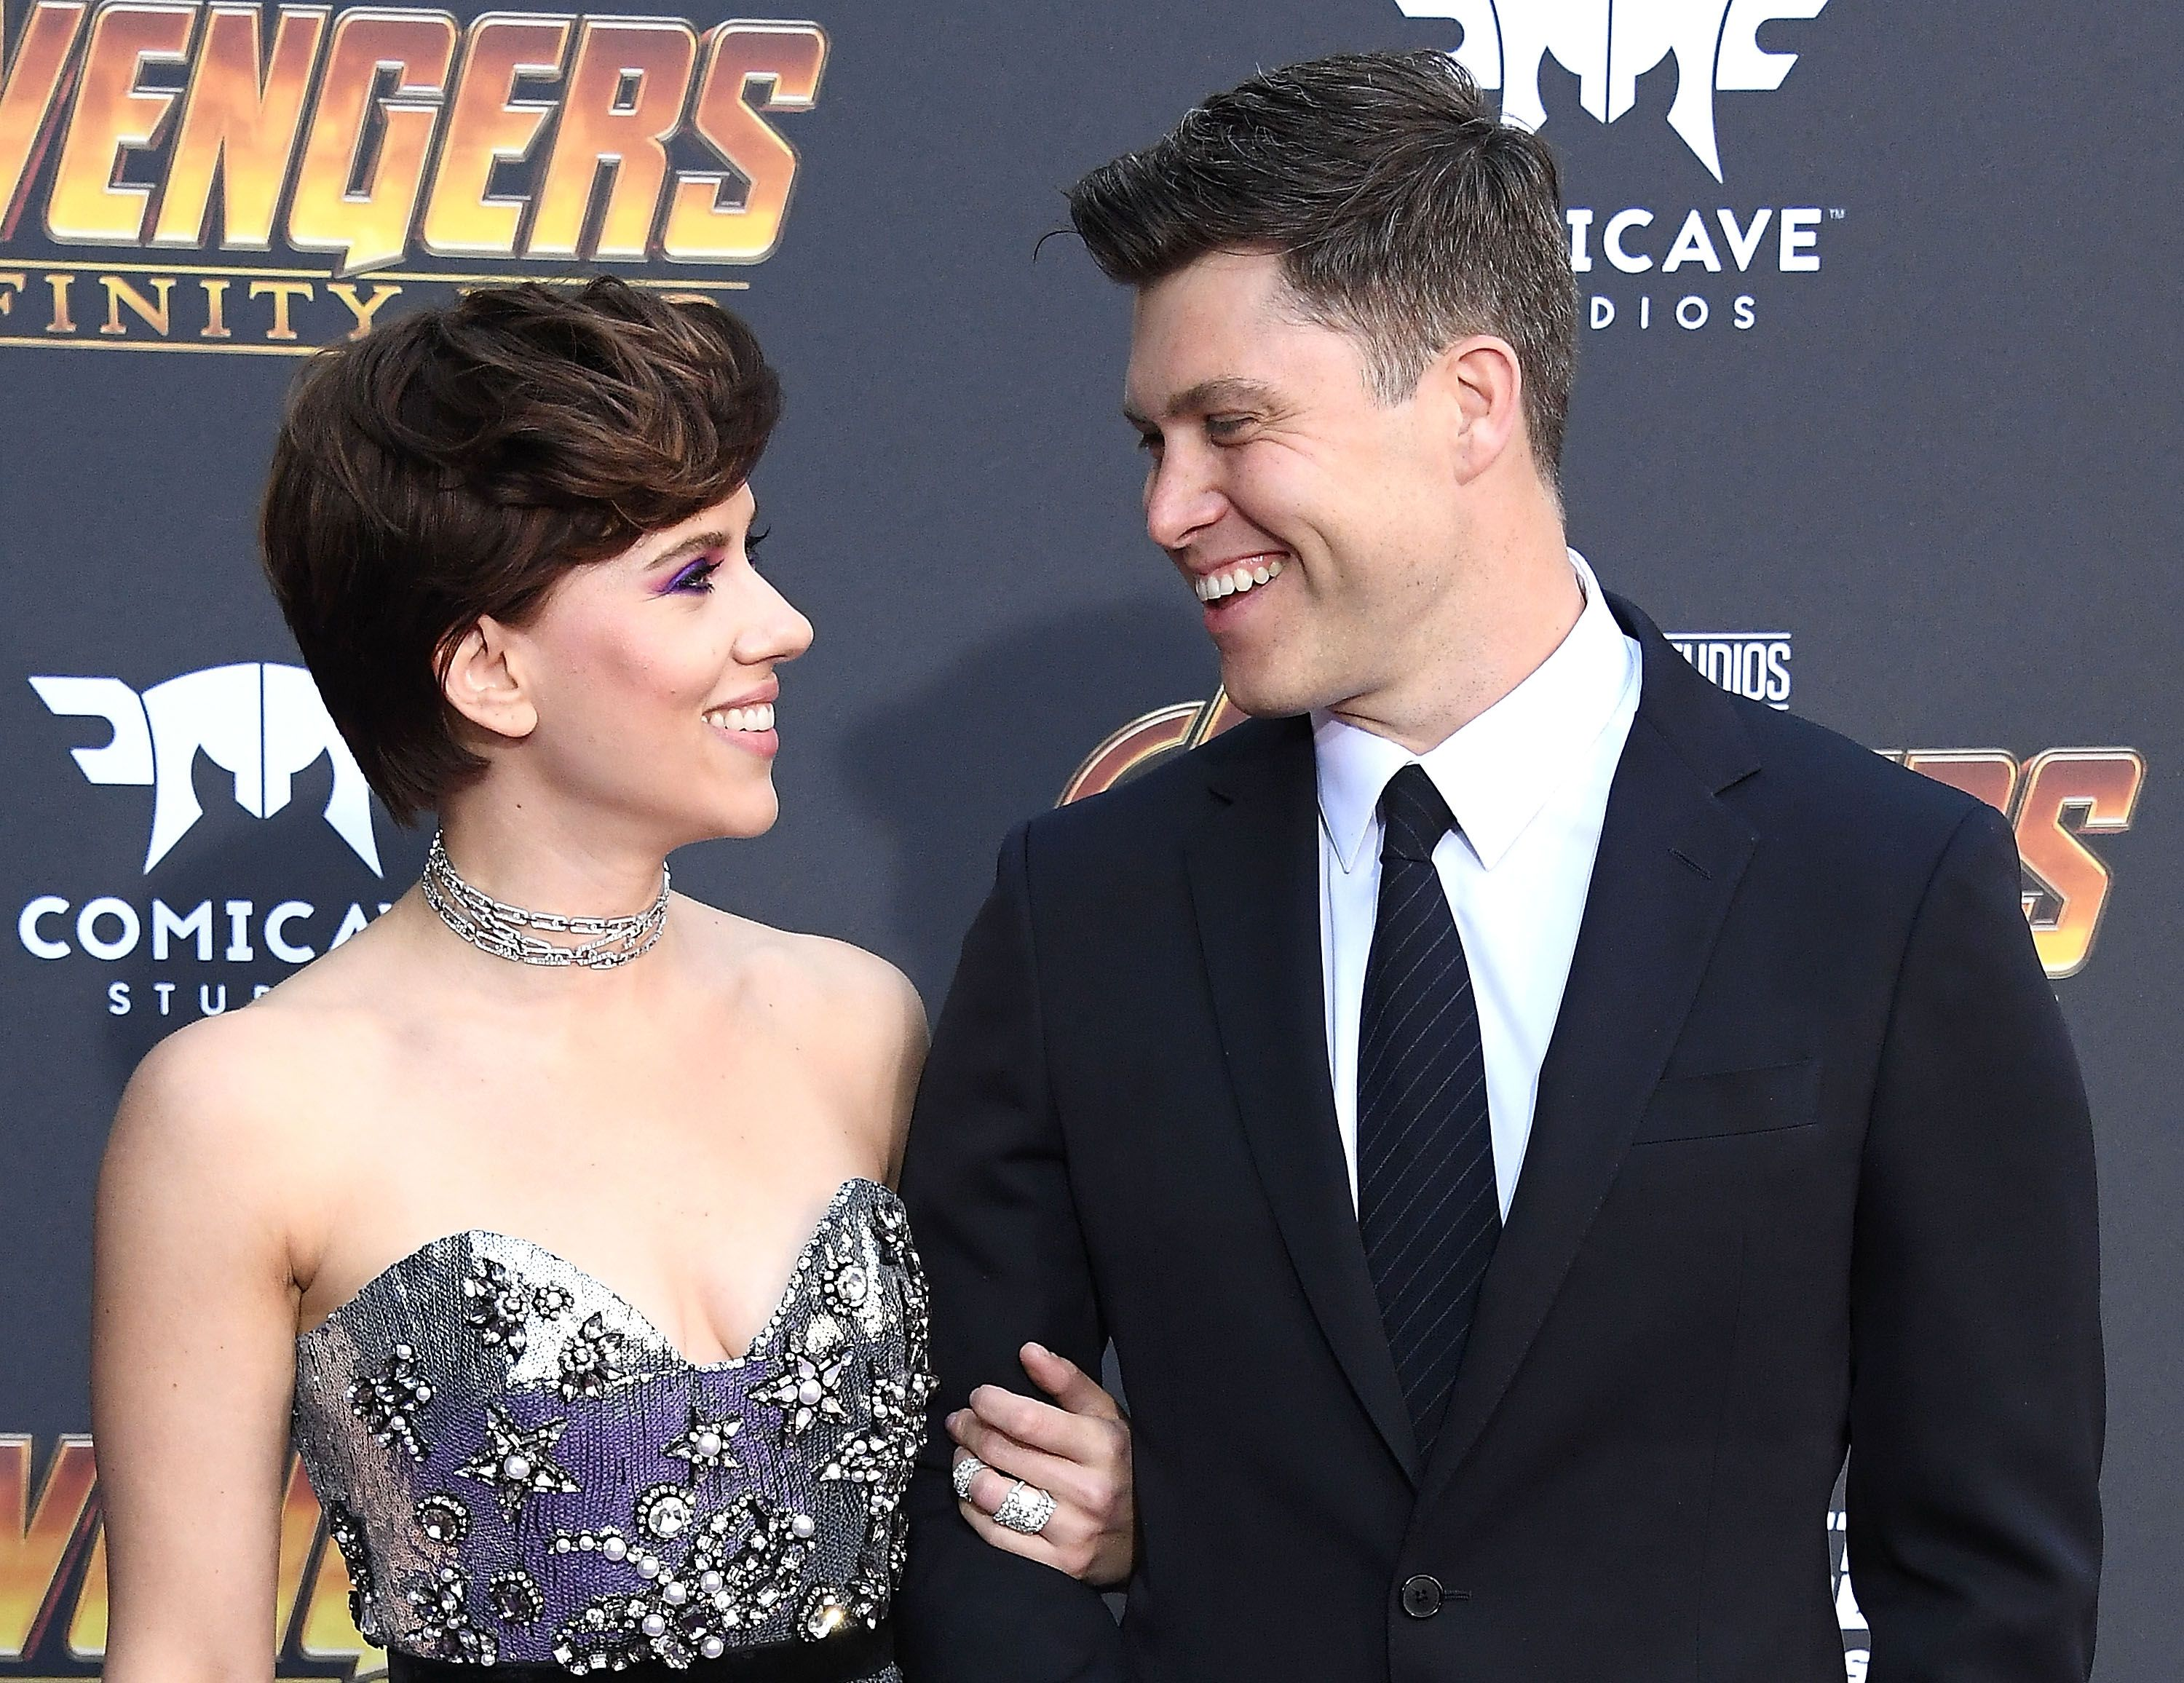 Scarlett Johansson And Boyfriend Colin Jost Make Their Red Carpet Debut Avengers Infinity War Premiere